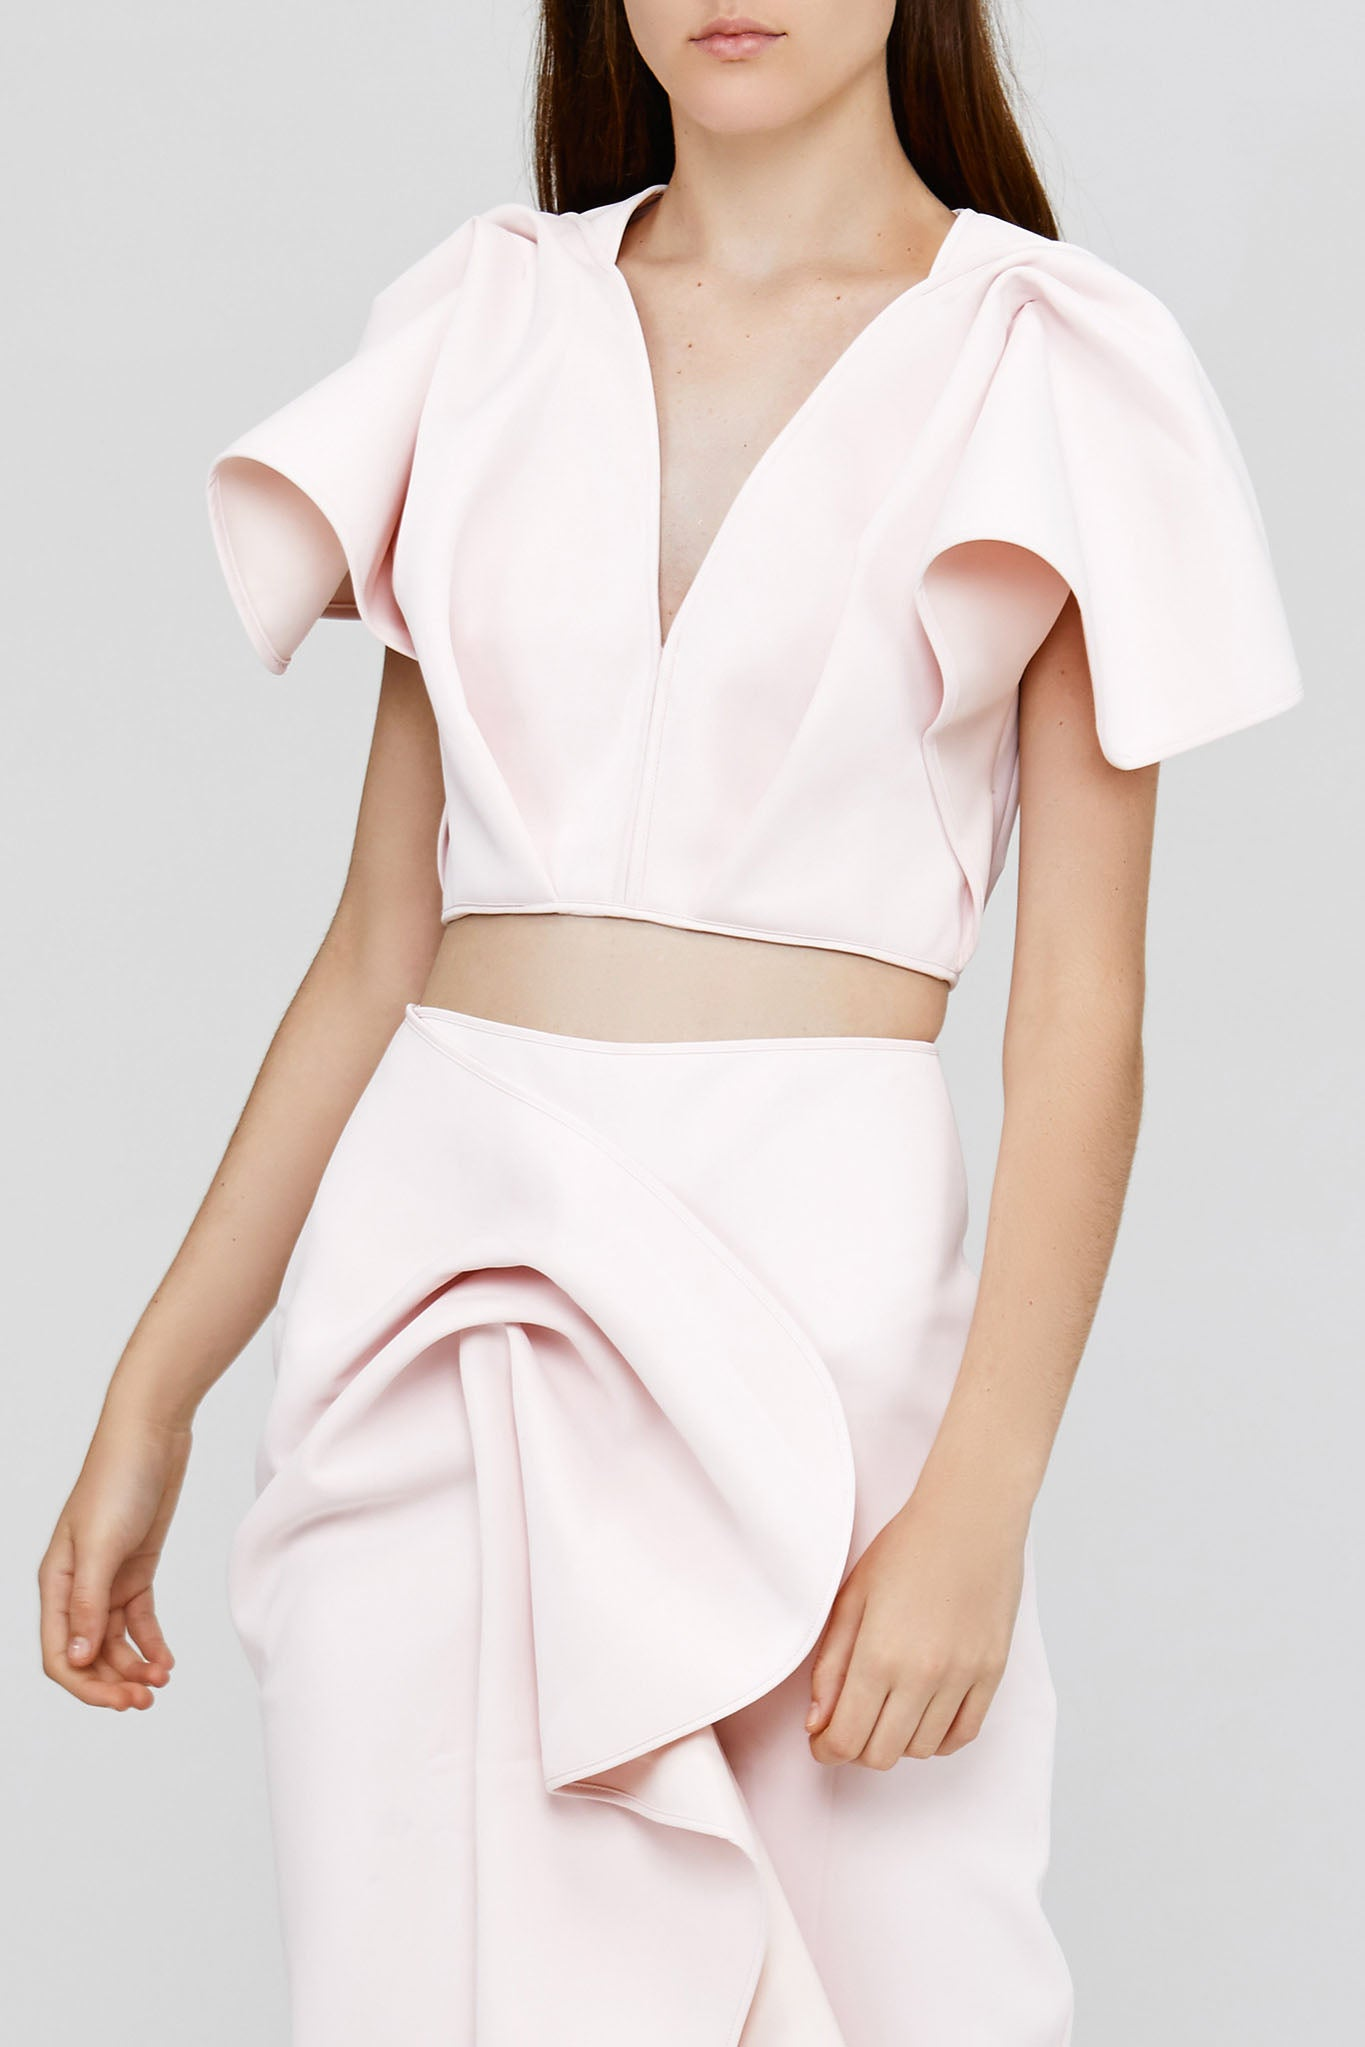 Pastel Pink Acler Crawford Top with Sleeve Ruffles